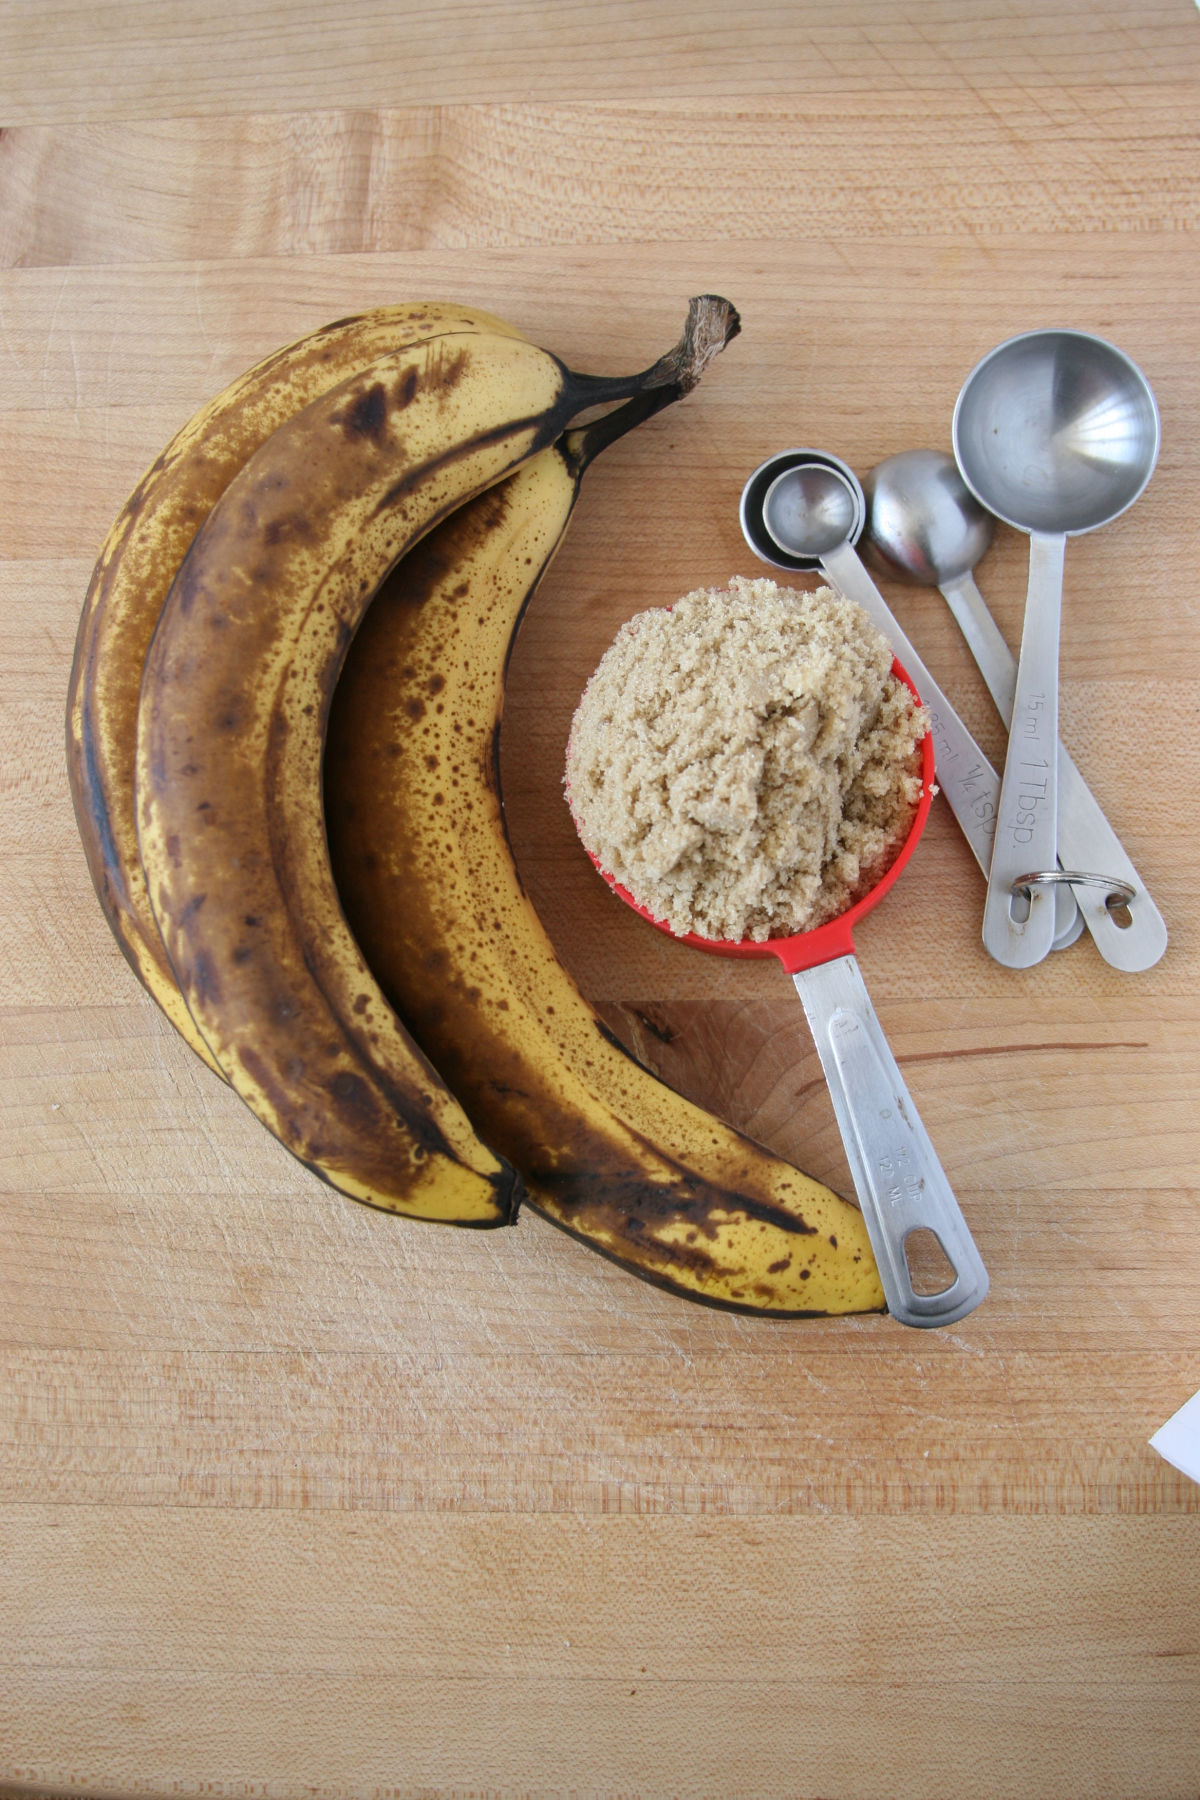 ripe bananas and a red measuring cup of brown sugar on a cutting board